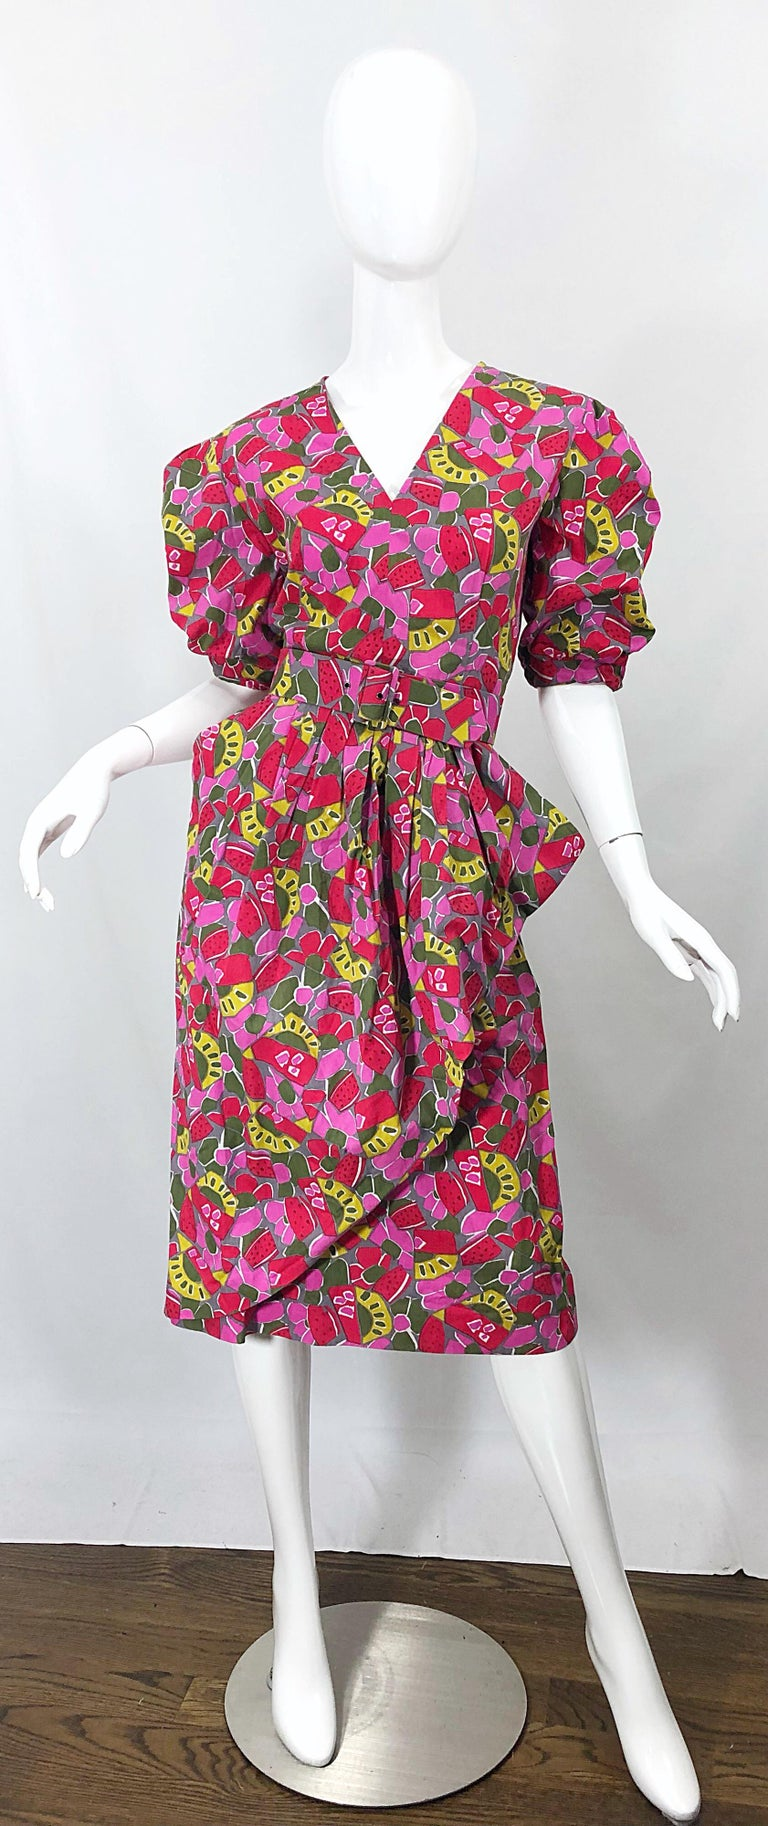 Chic 1980s GUY LAROCHE novelty fruit print Avant Garde cotton belted dress! Stylish puff sleeves, with a side peplum. Pockets at each side of the hips. Hidden zipper up the back with  hook-and-eye closure. Prints of watermelon, kiwi, strawberries,